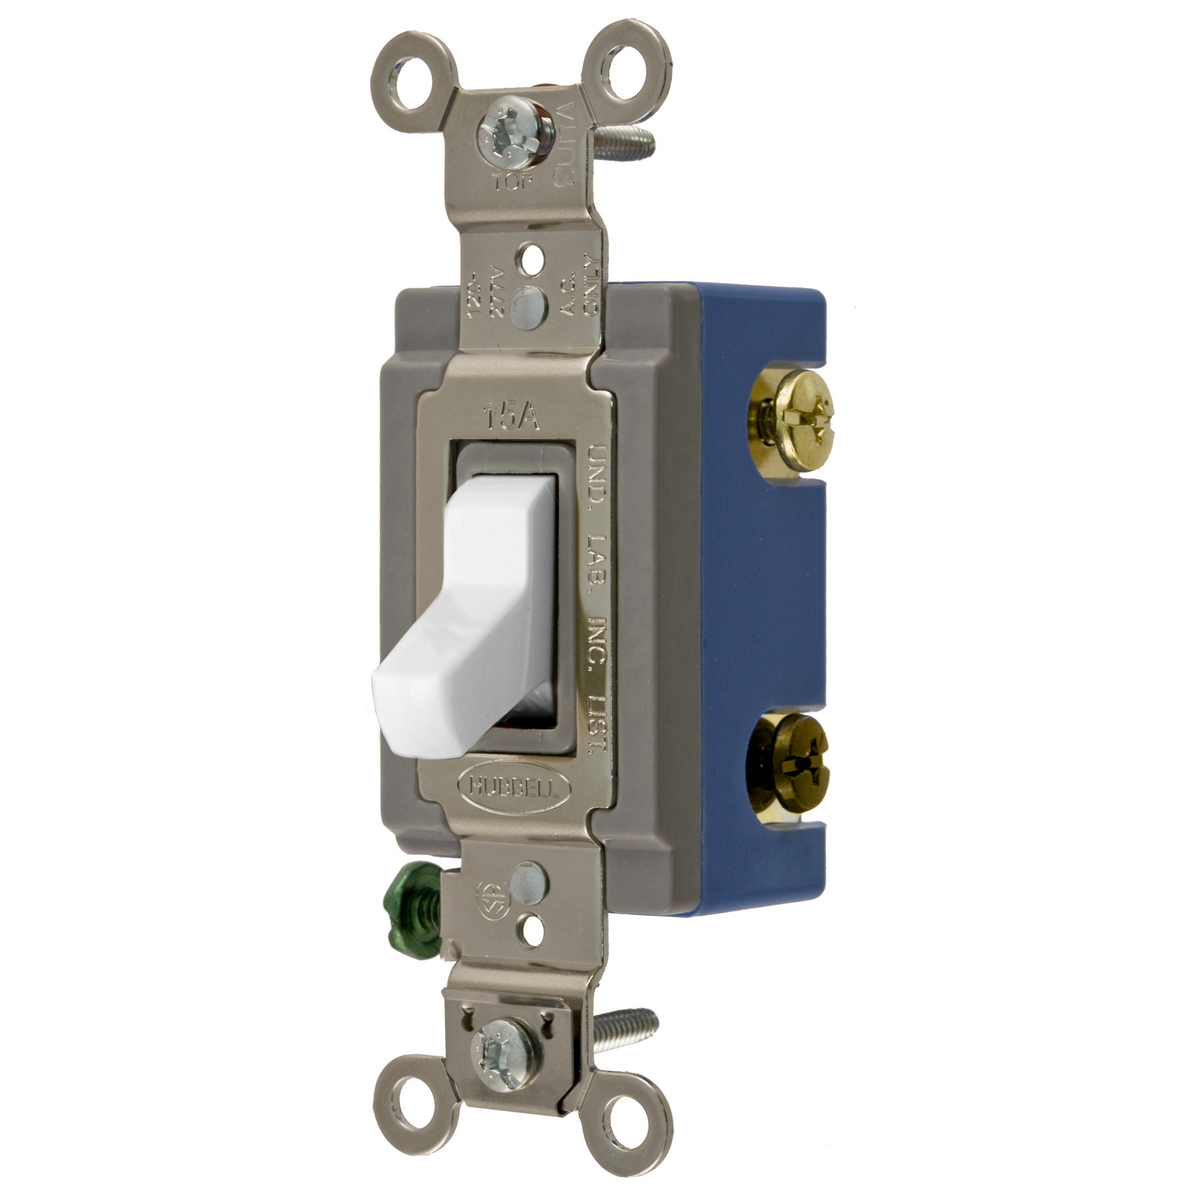 Hubbell Wiring Devicekellems Hbl1203gy Wall Switch 3way Toggle